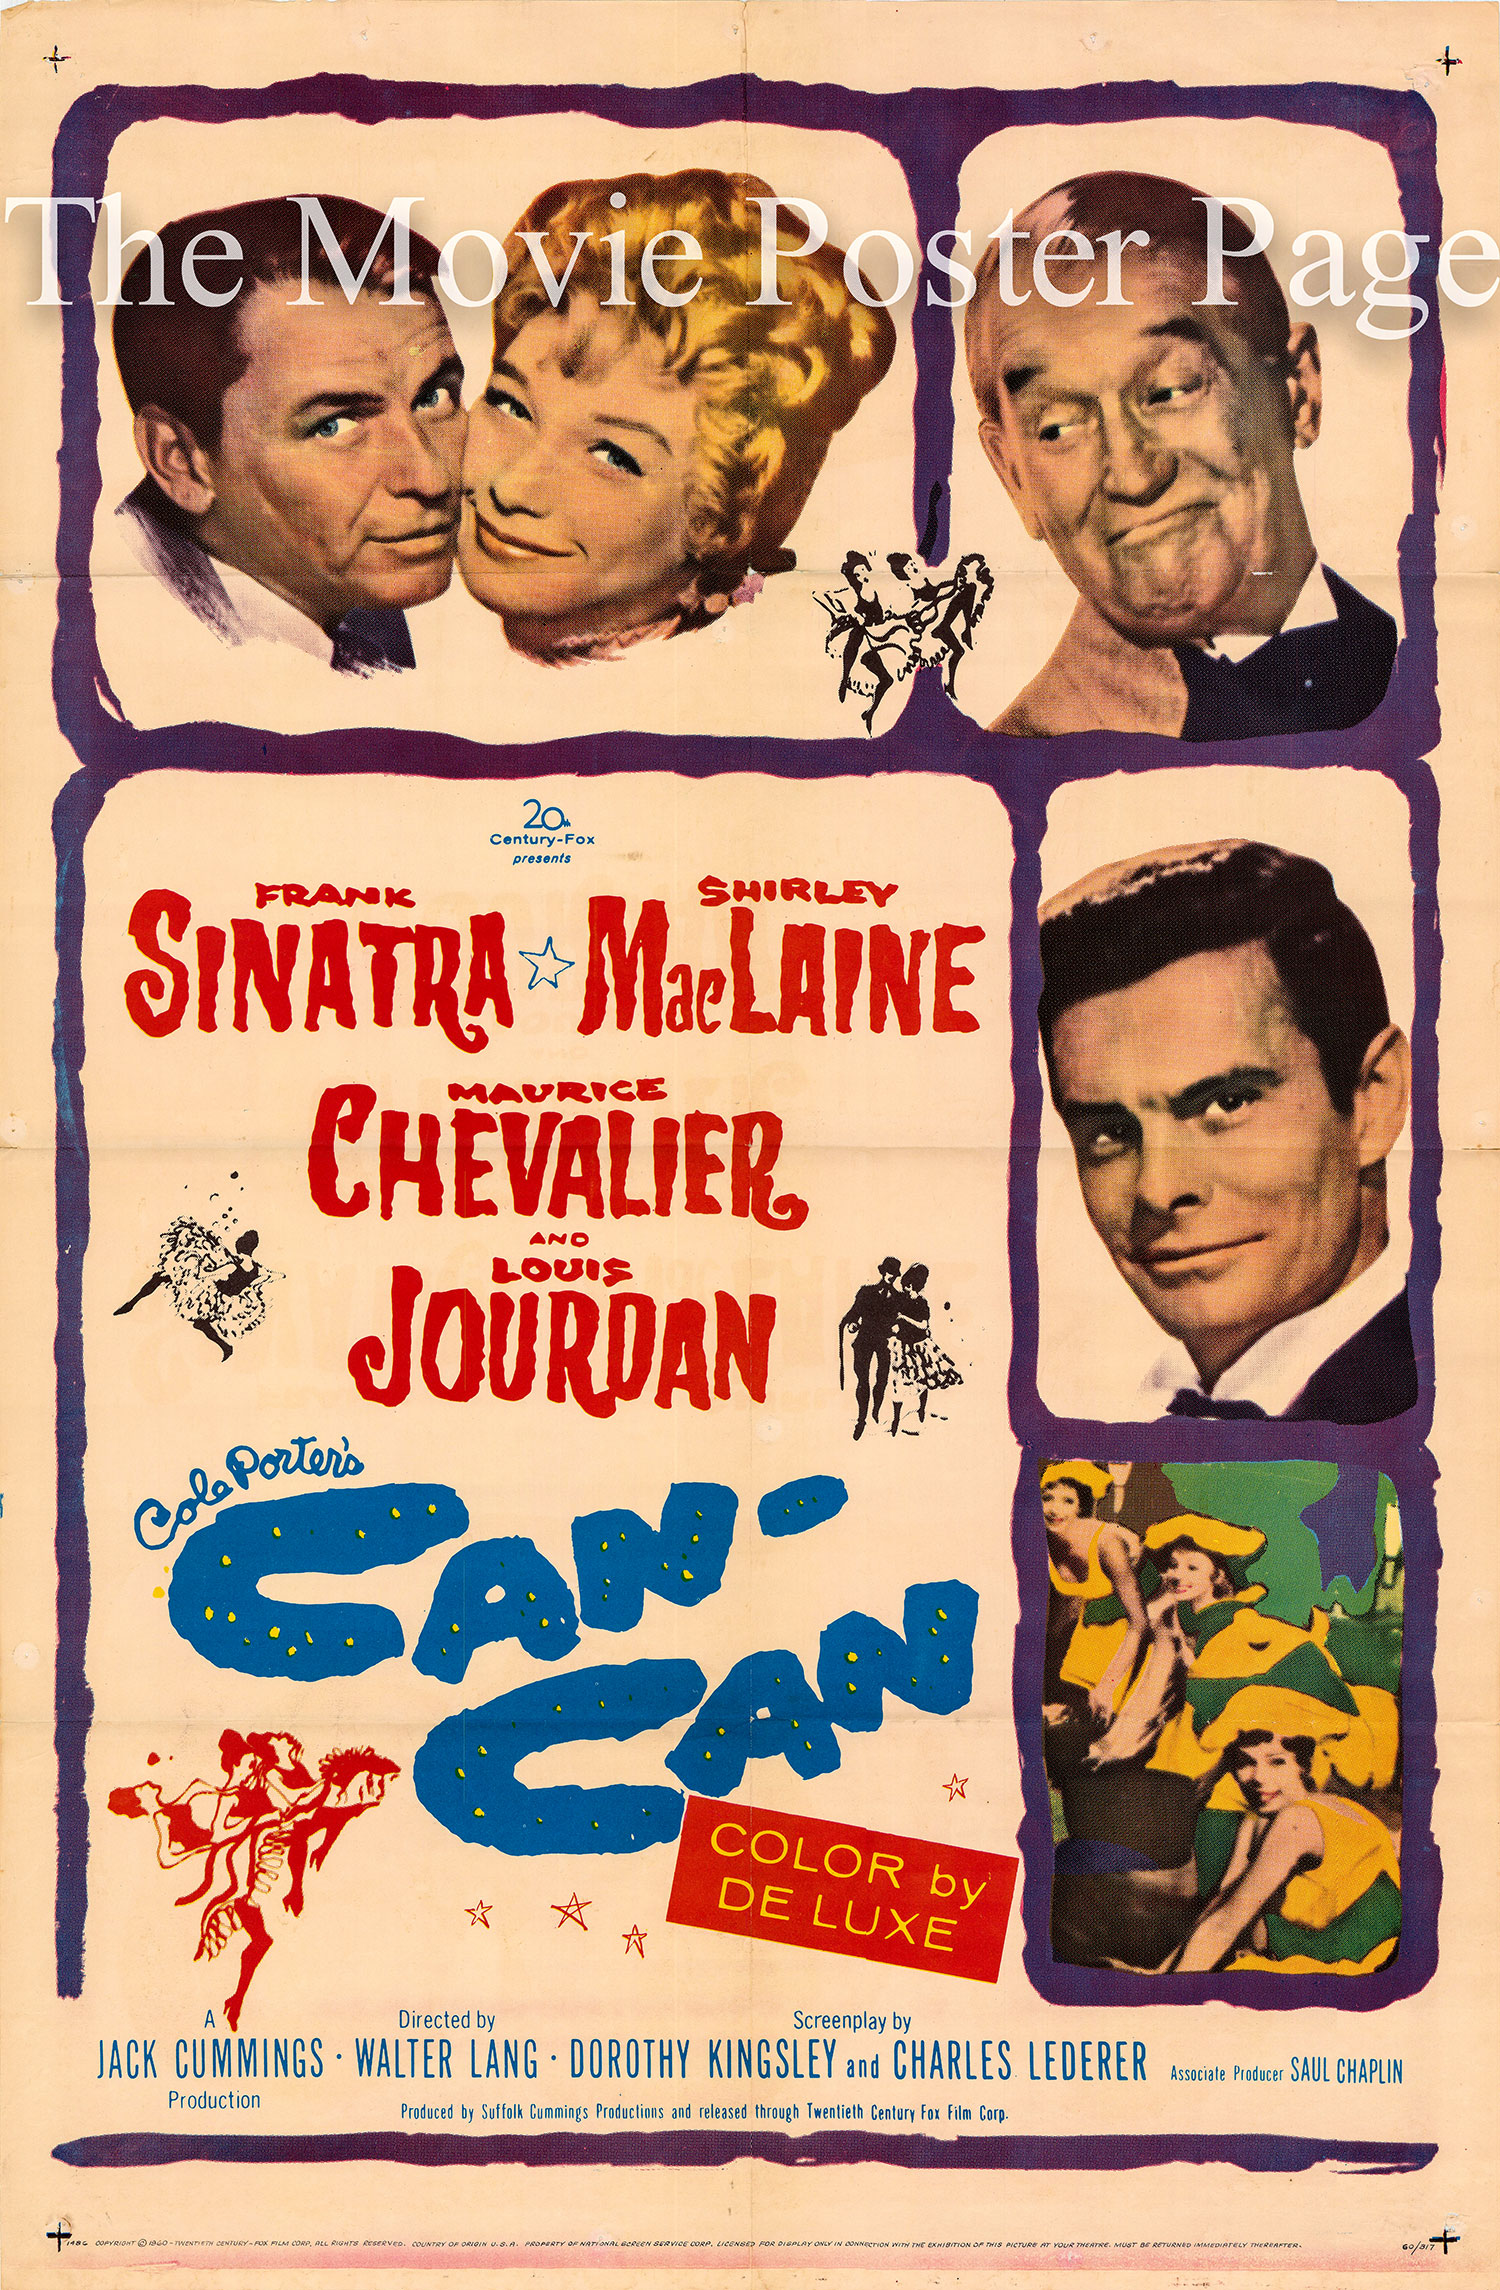 pictured is a US promotional poster for the 1960 Walter Lang film Can-Can starring Frank Sinatra.